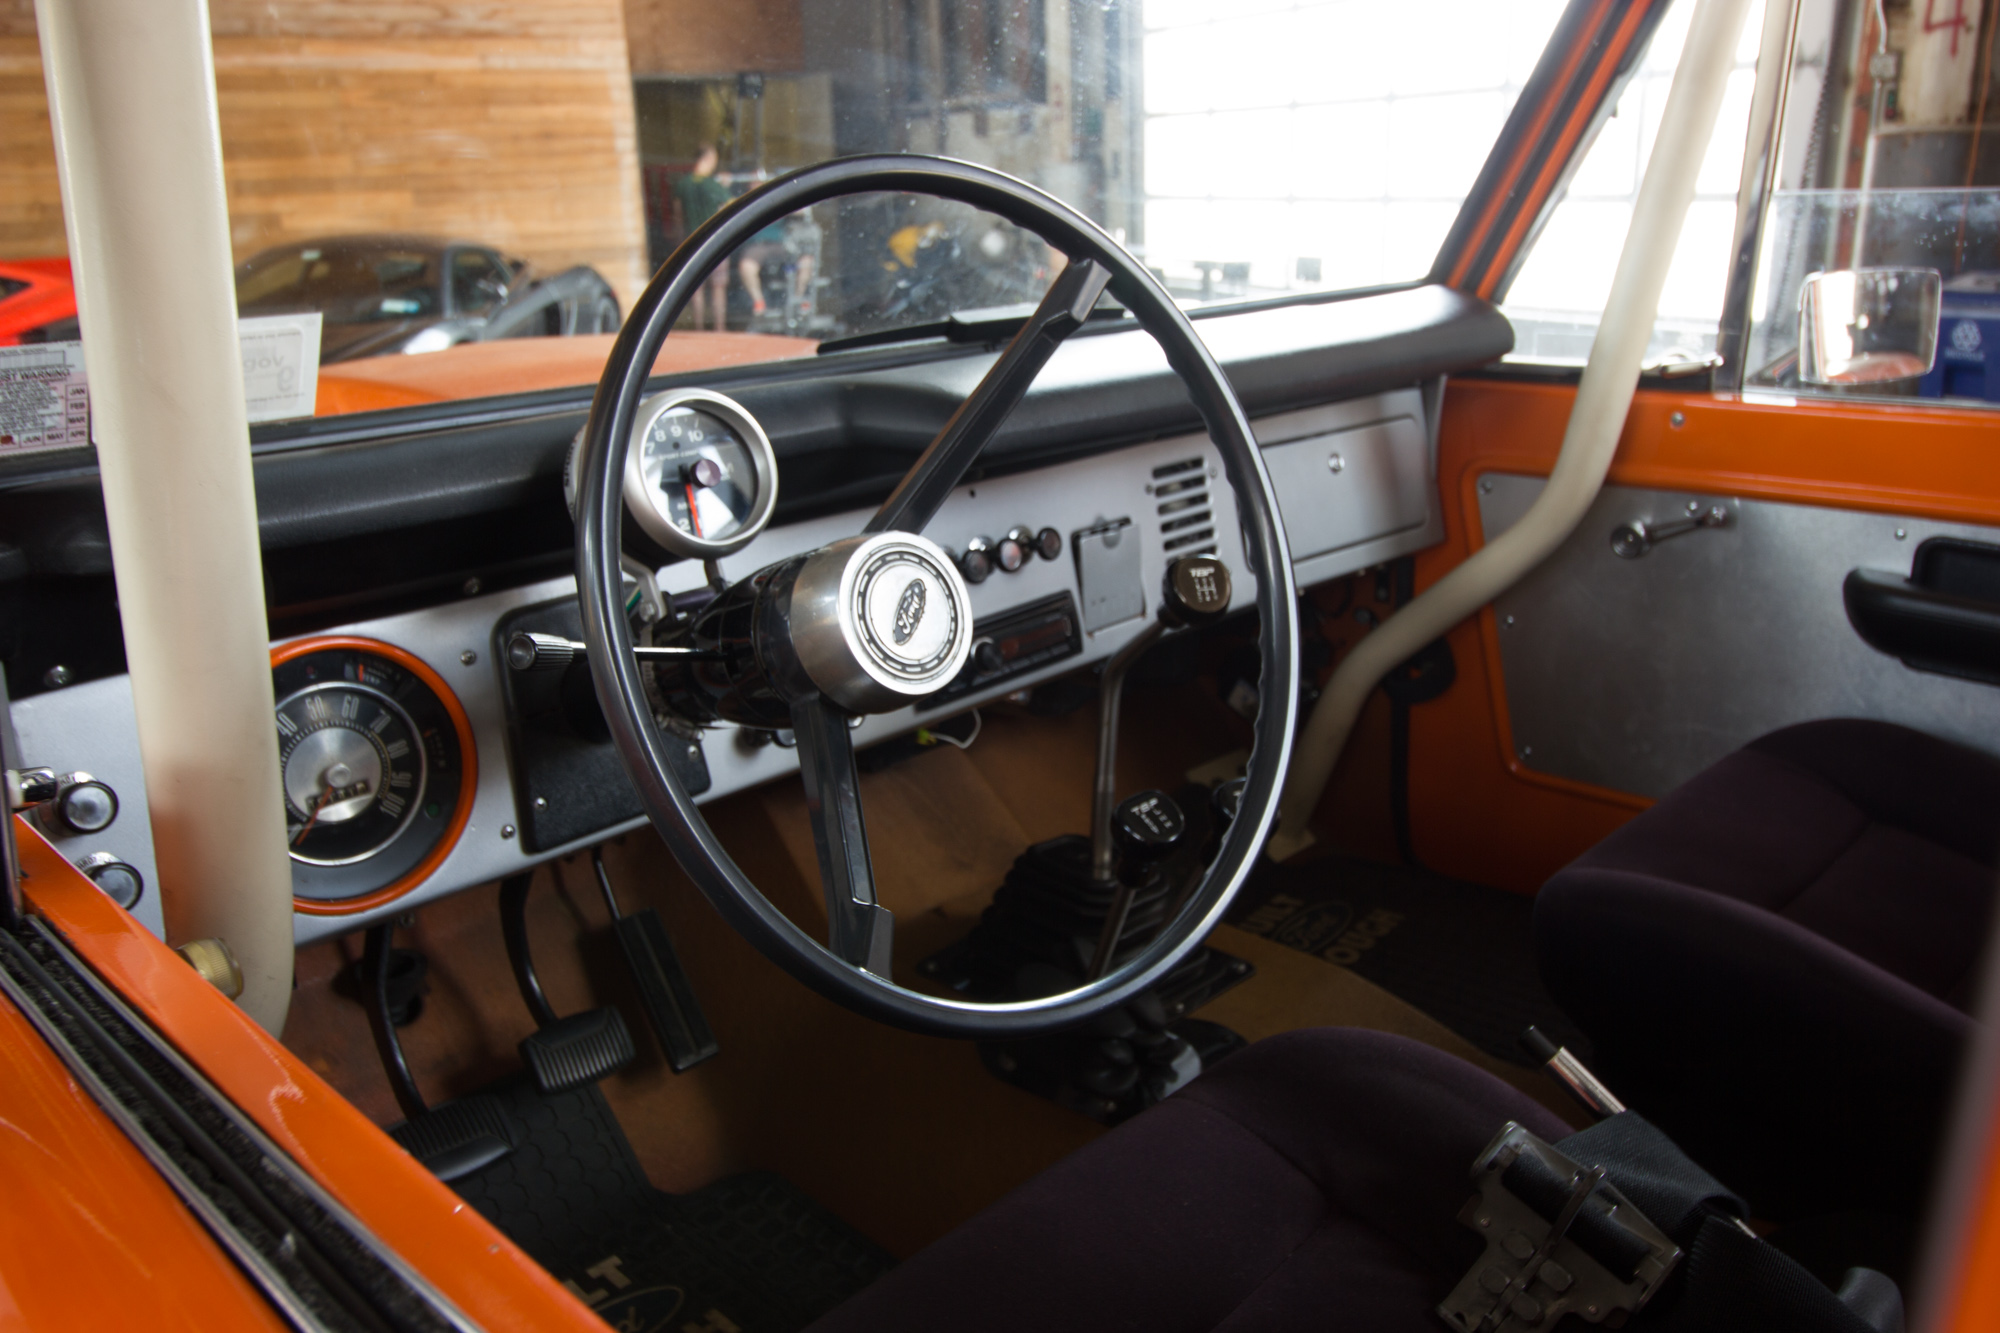 Steering Wheel and cabin of a classic pickup